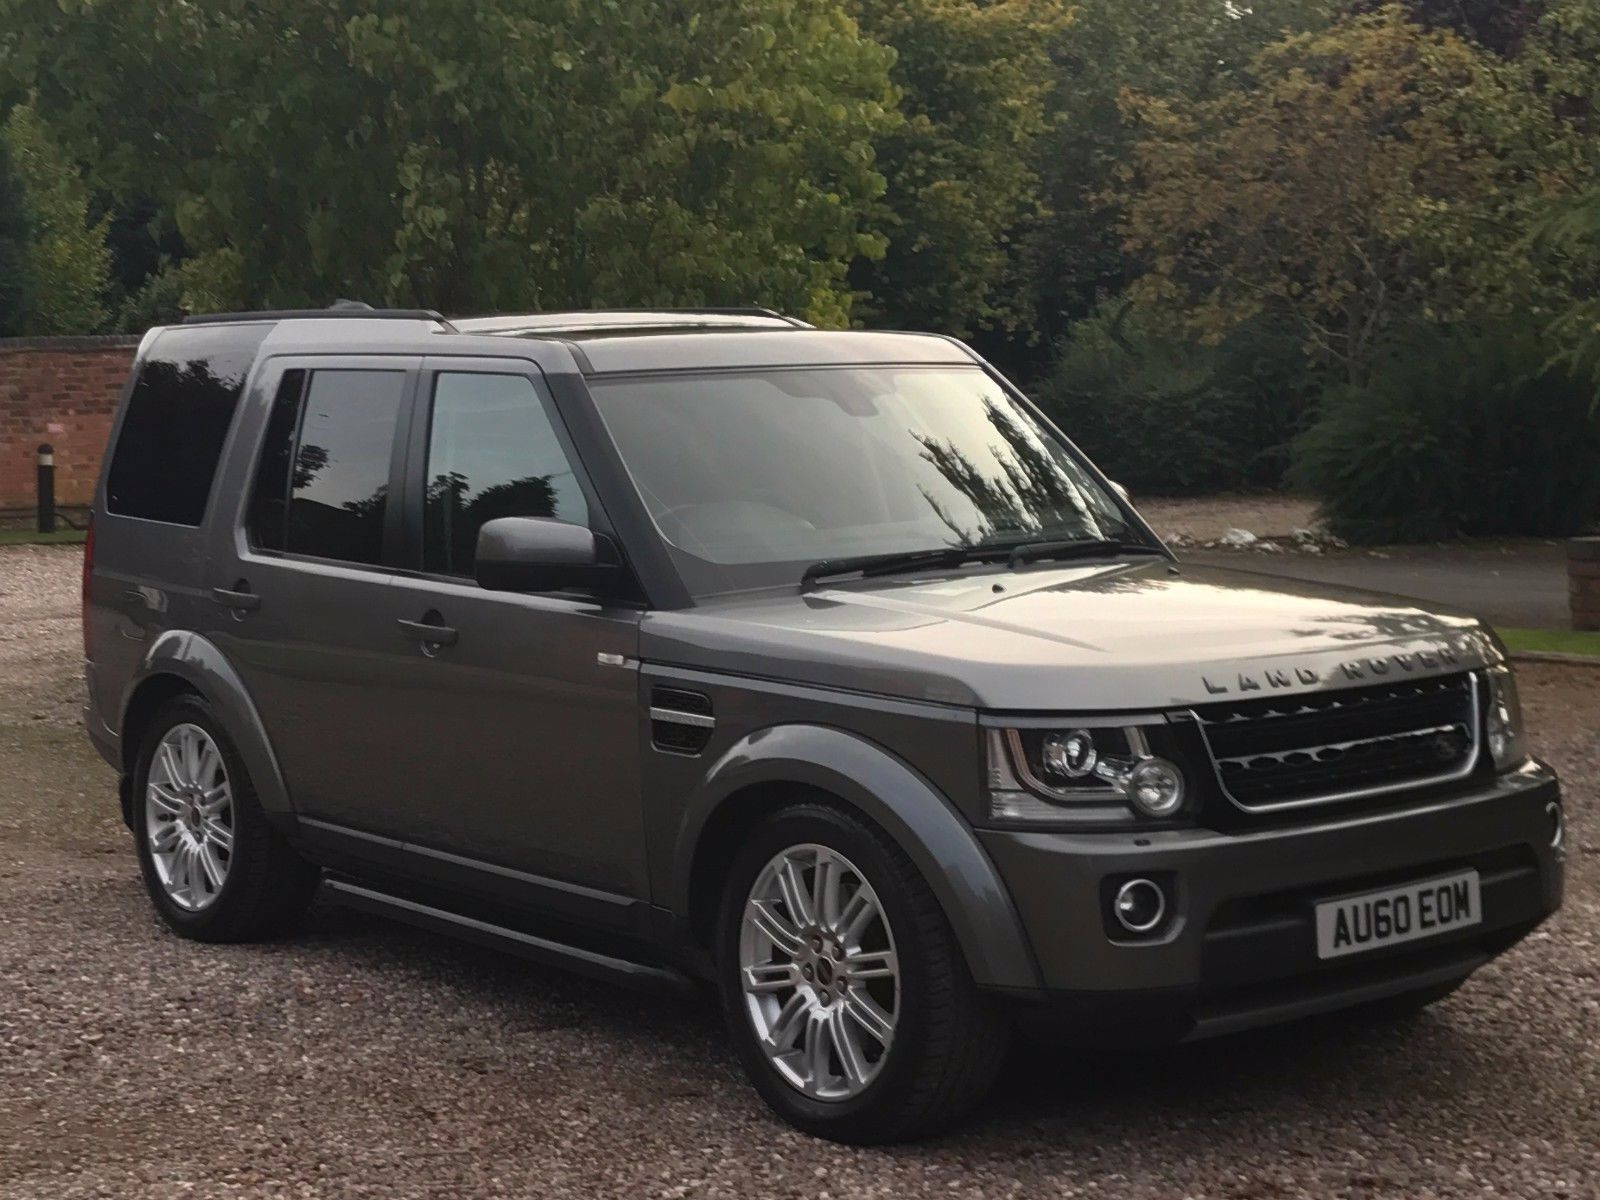 2010 Land Rover Discovery 4 Hse 3 0tdv6 2016 Conversion Facelift Luxury Cars Range Rover Range Rover Supercharged Land Rover